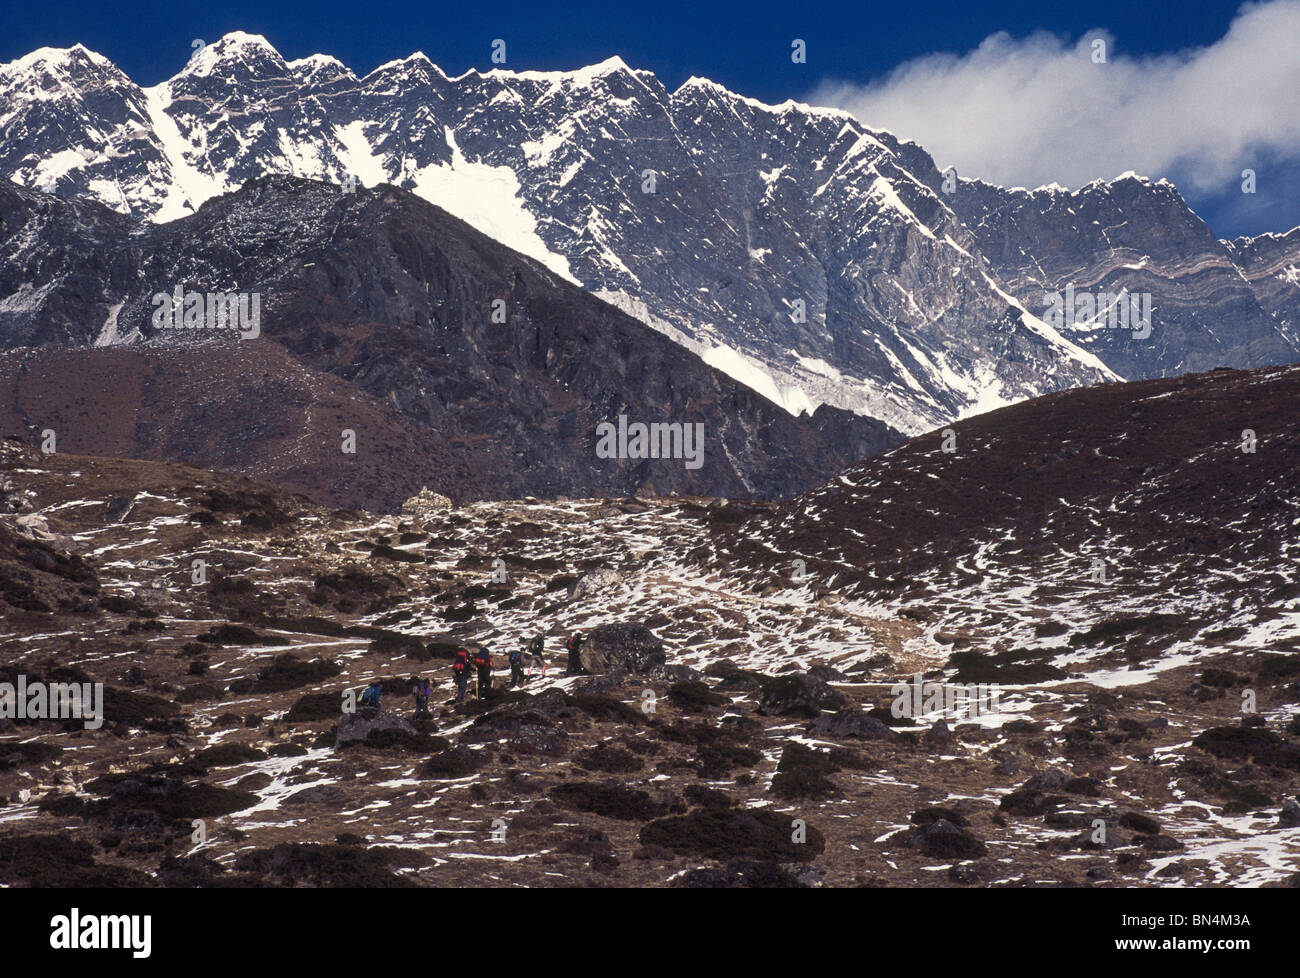 The massive wall of Lhotse; Everest's neighbor as seen from the valley of the Imja Khola; Chukung; Nepal - Stock Image